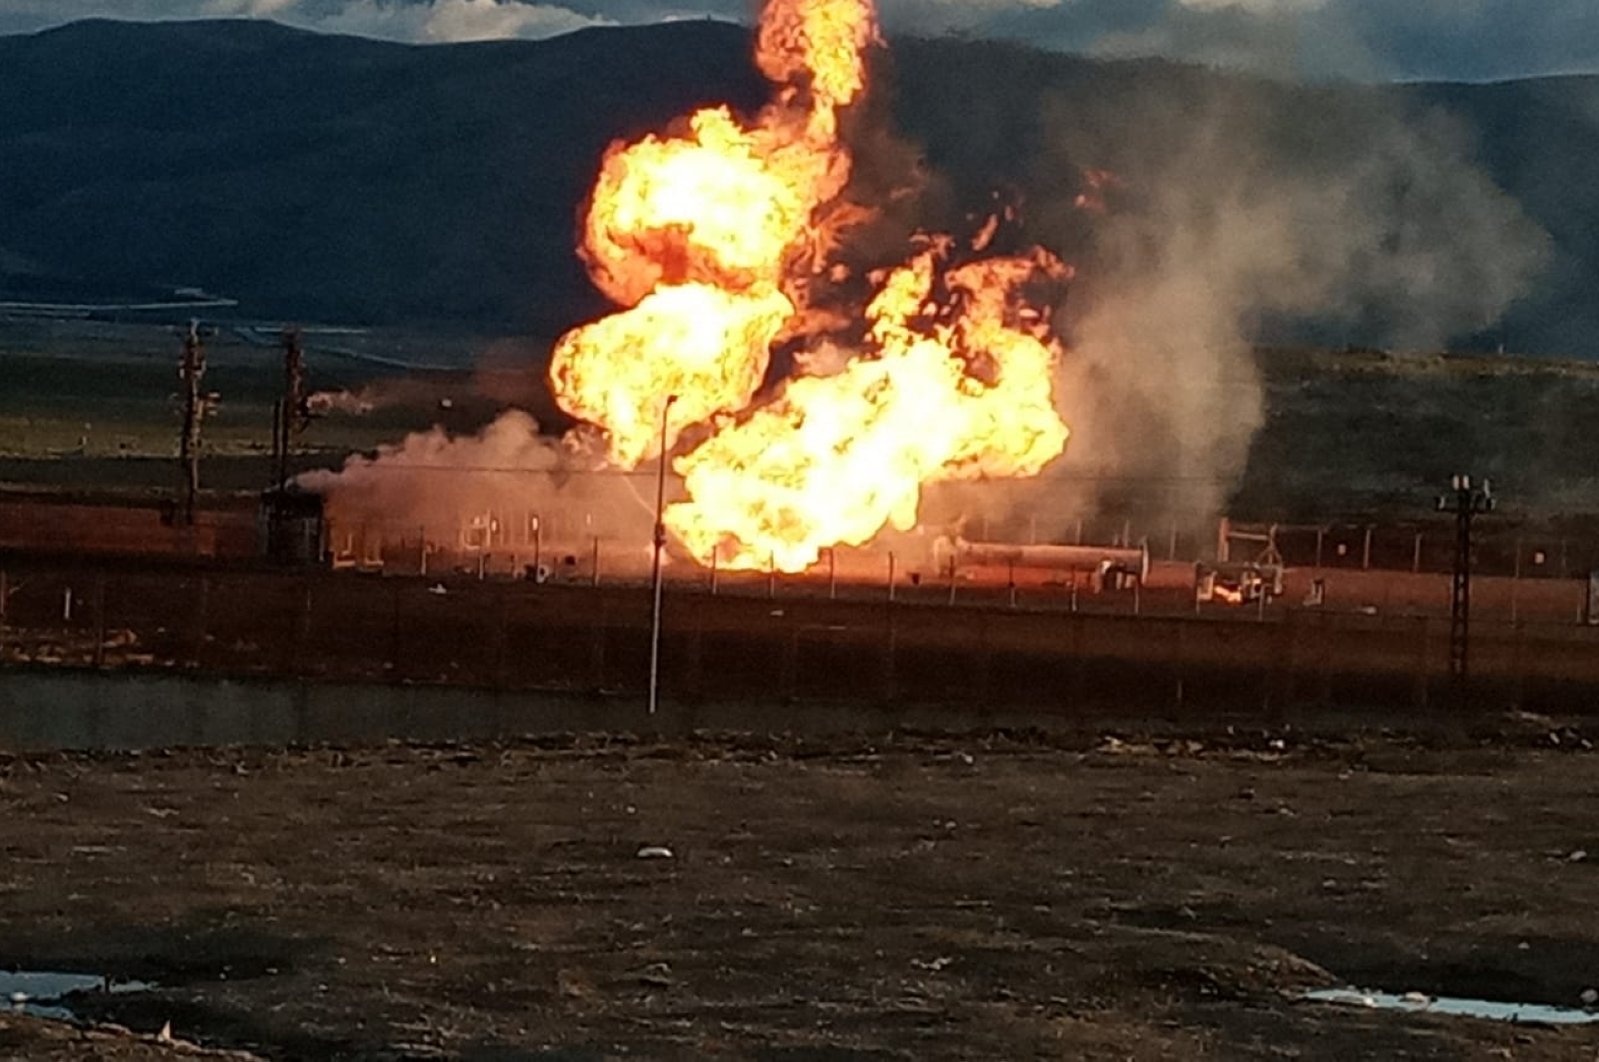 Flames engulf the pipeline in Ağrı, Turkey, Tuesday, March 31, 2020. (DHA Photo)